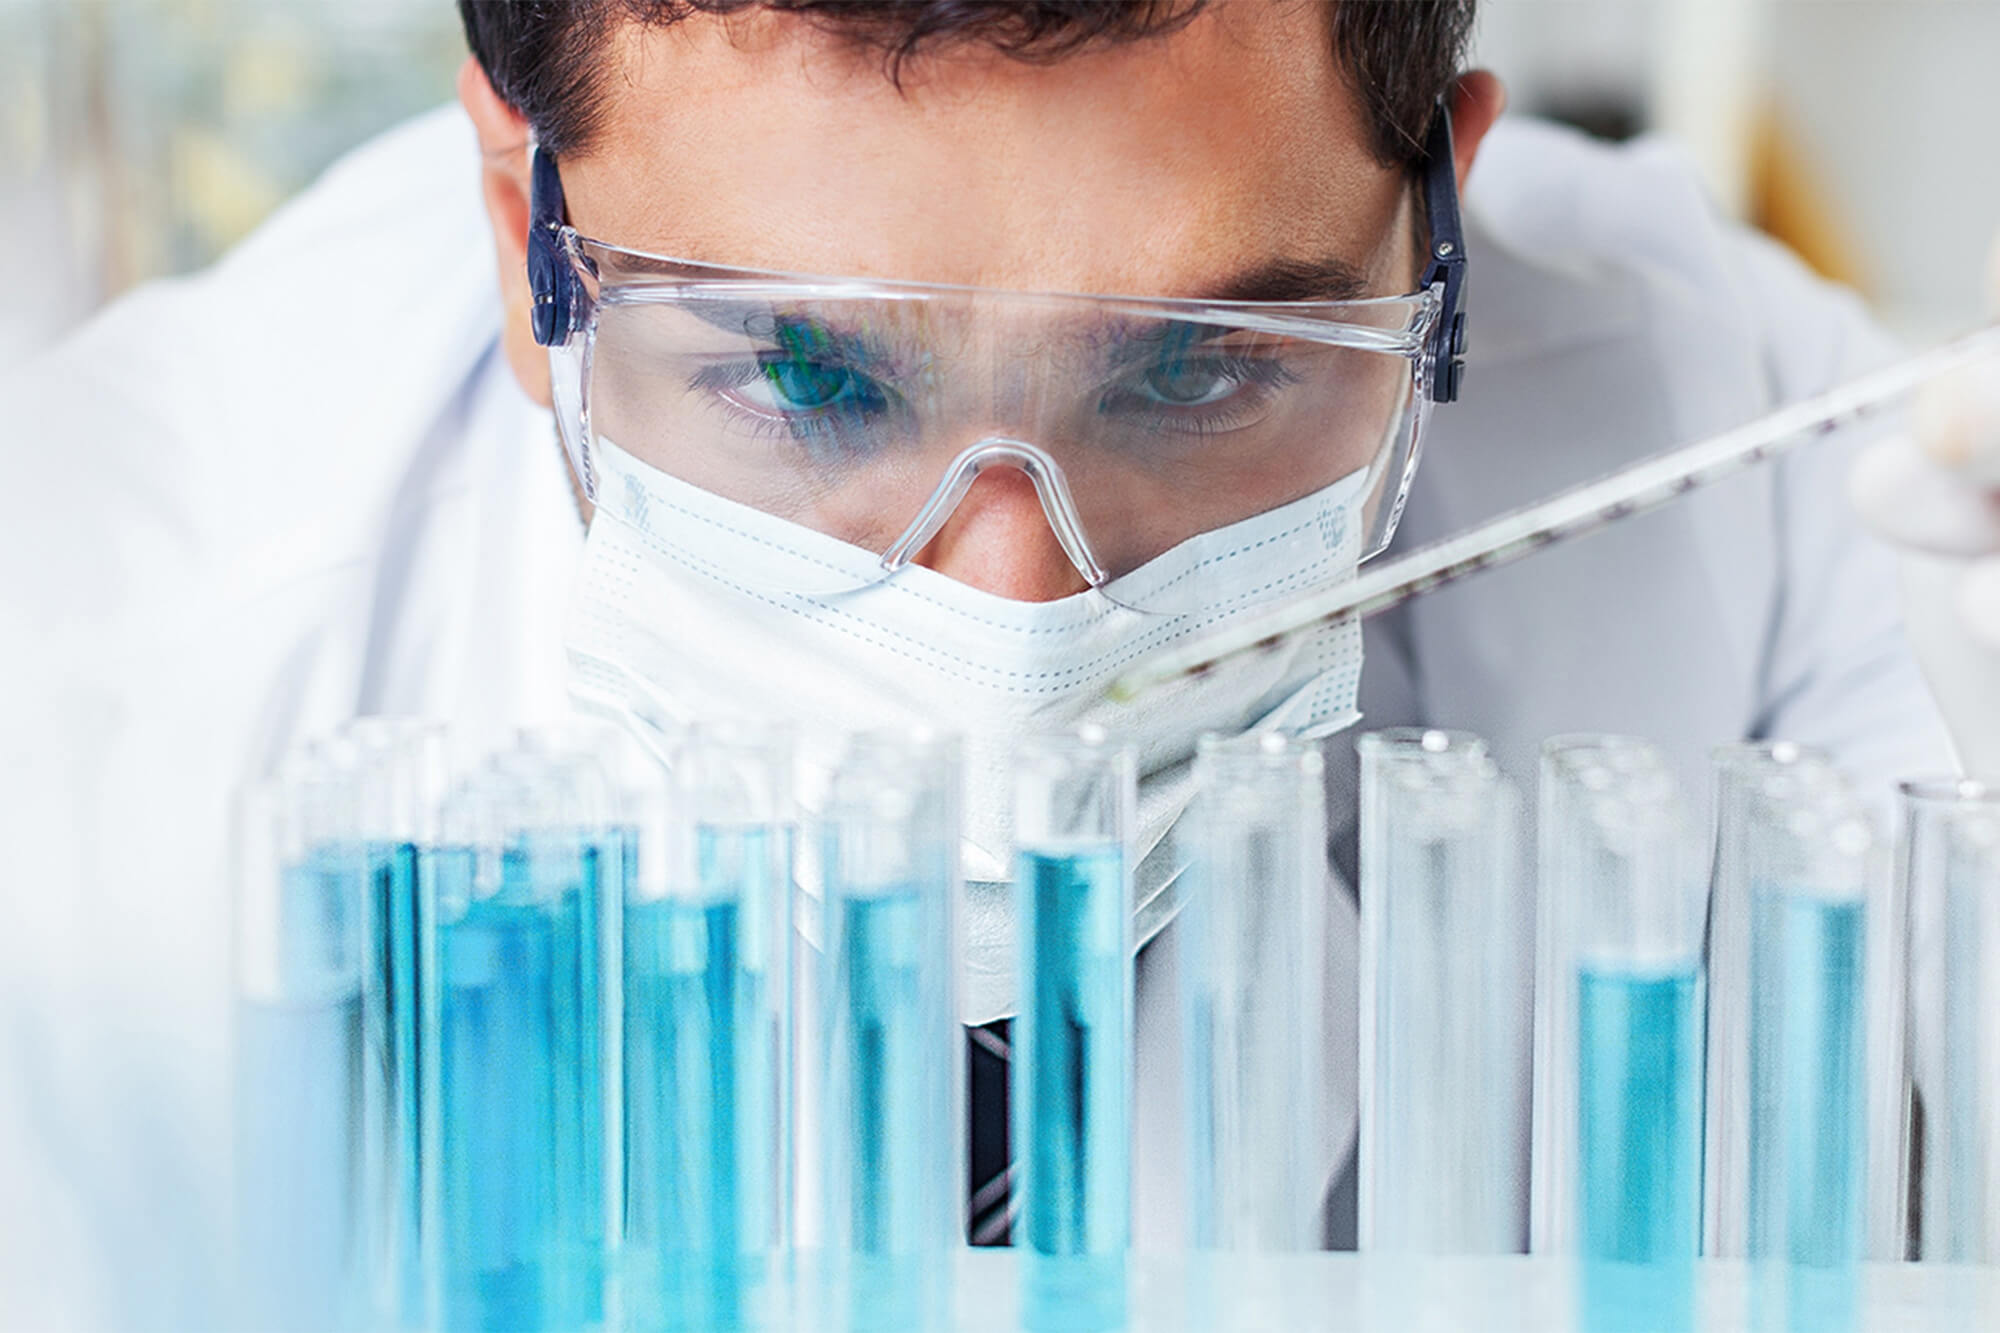 Photo of man with safety glasses and face mask with test tubes filled with blue liquid.